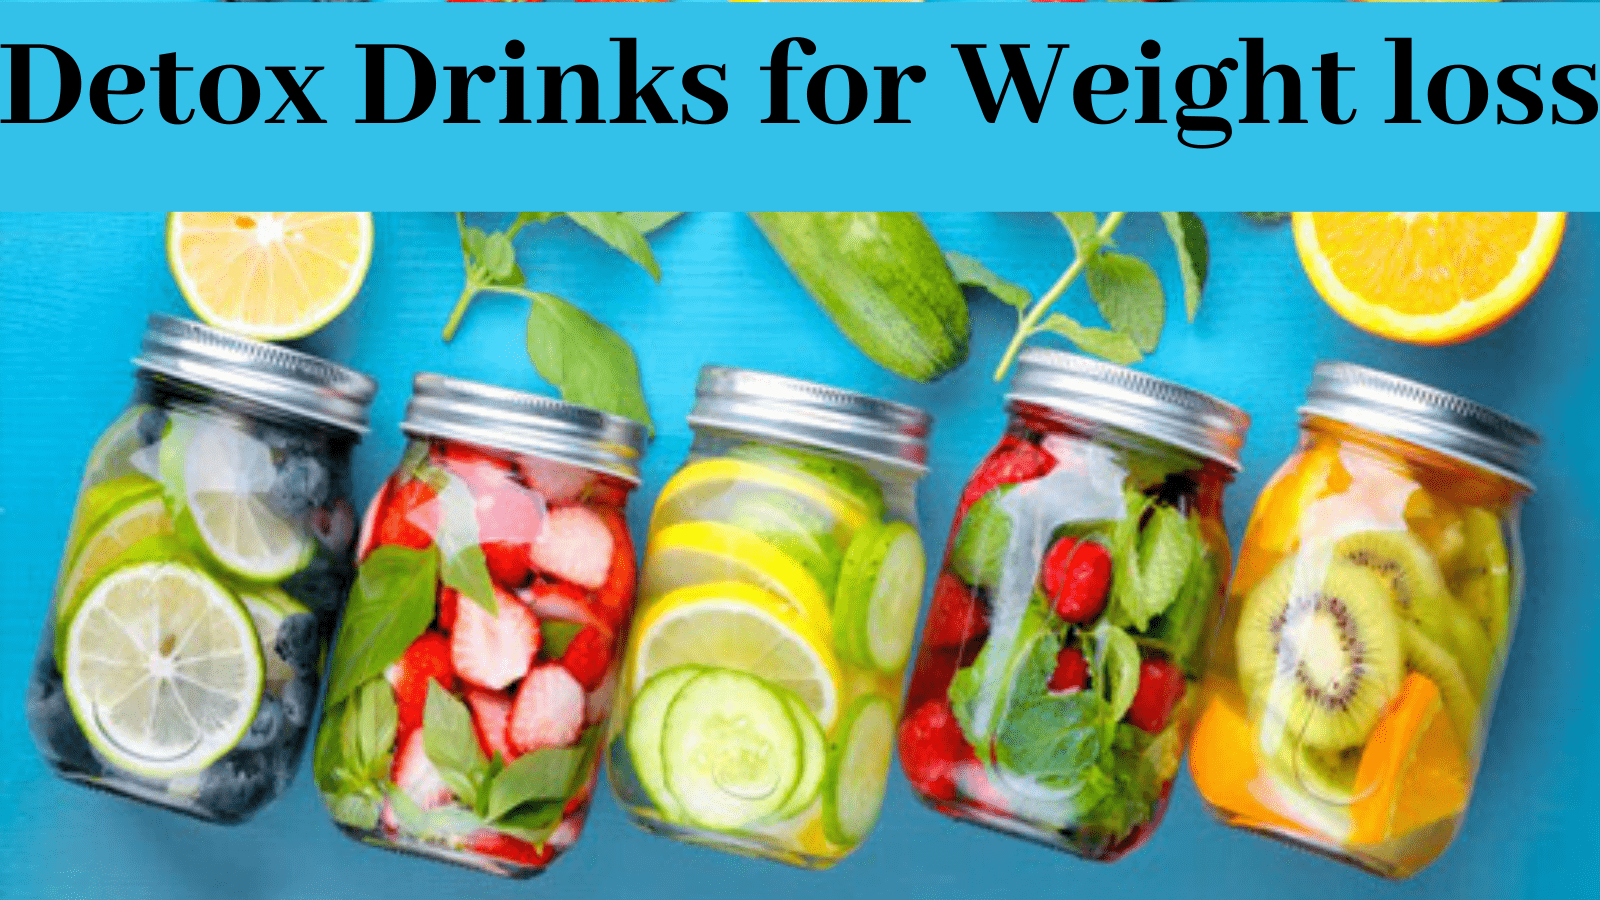 8 Simple and Best Detox drinks to lose weight.